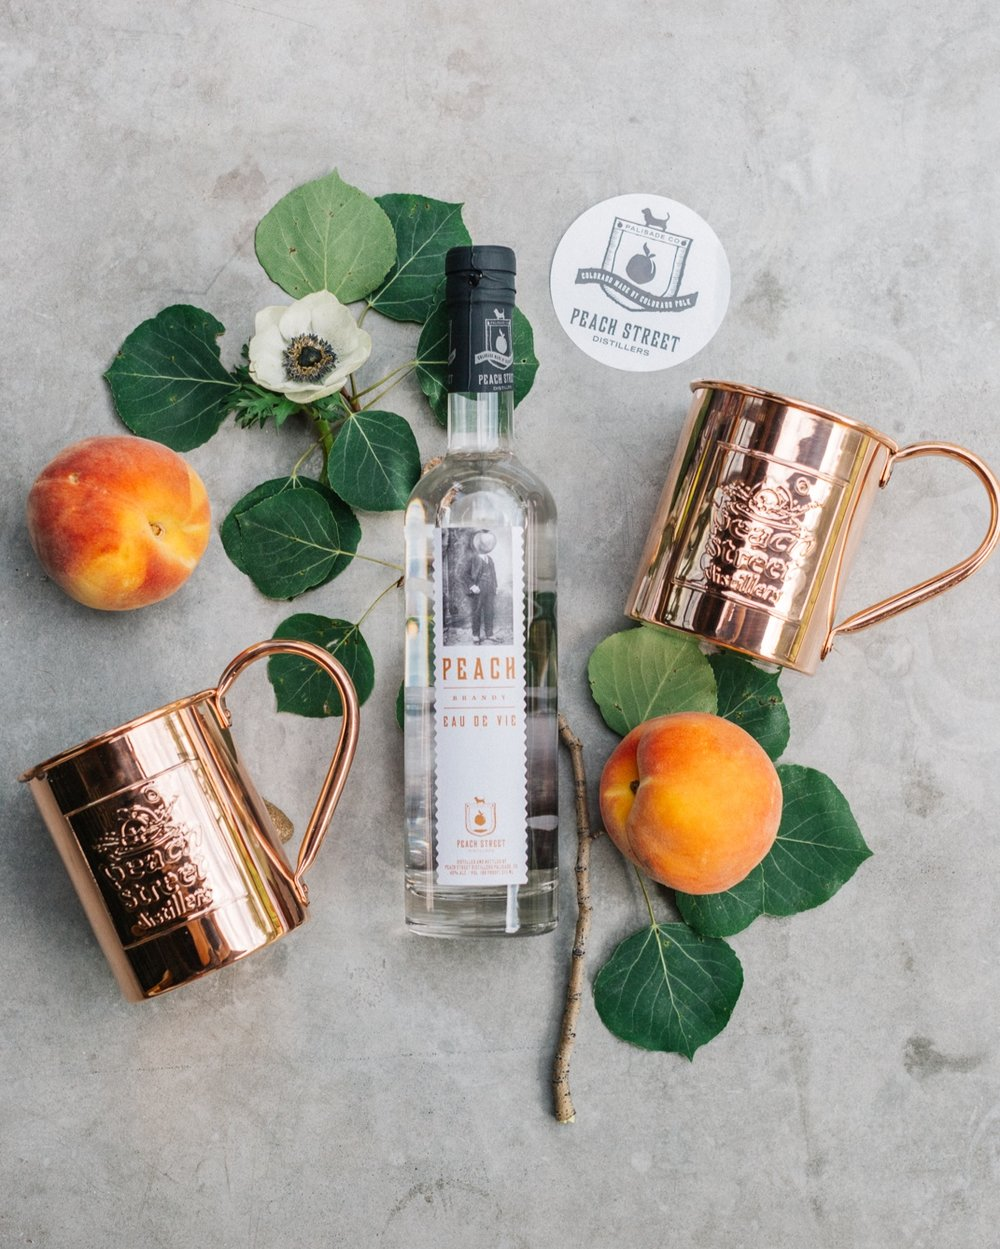 Peach Street Distillers and Palisade Peaches | Wedding favors at Zach's Cabin Bachelor Gulch Beaver Creek Wedding | Cat Mayer.JPG